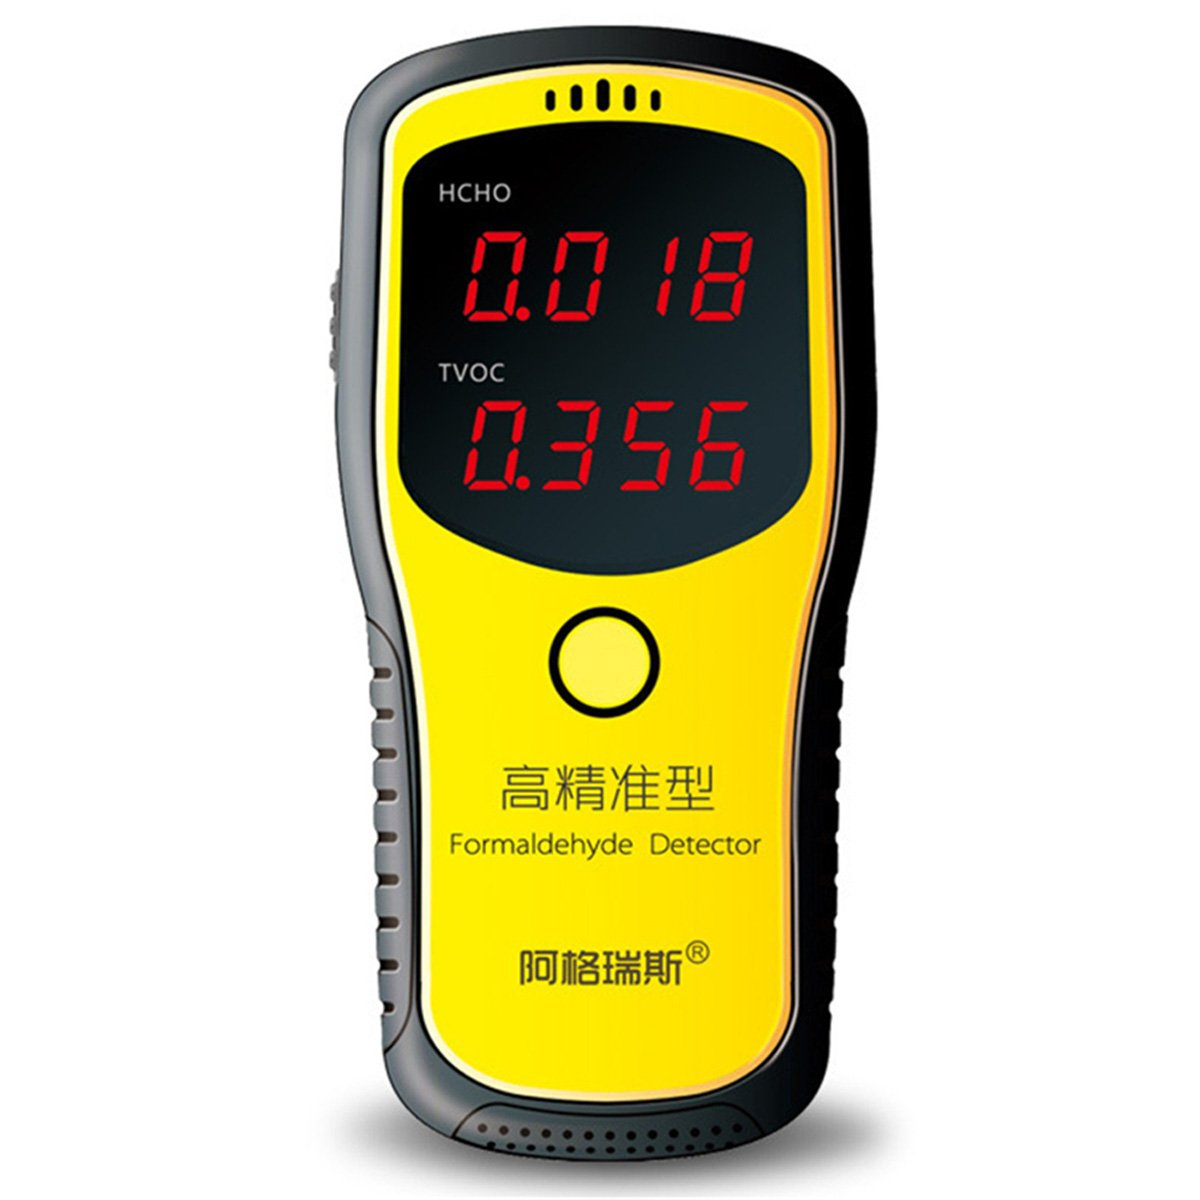 Professional Portable Formaldehyde Detector, Indoor Air Quality Tester with LCD Display for Home Use